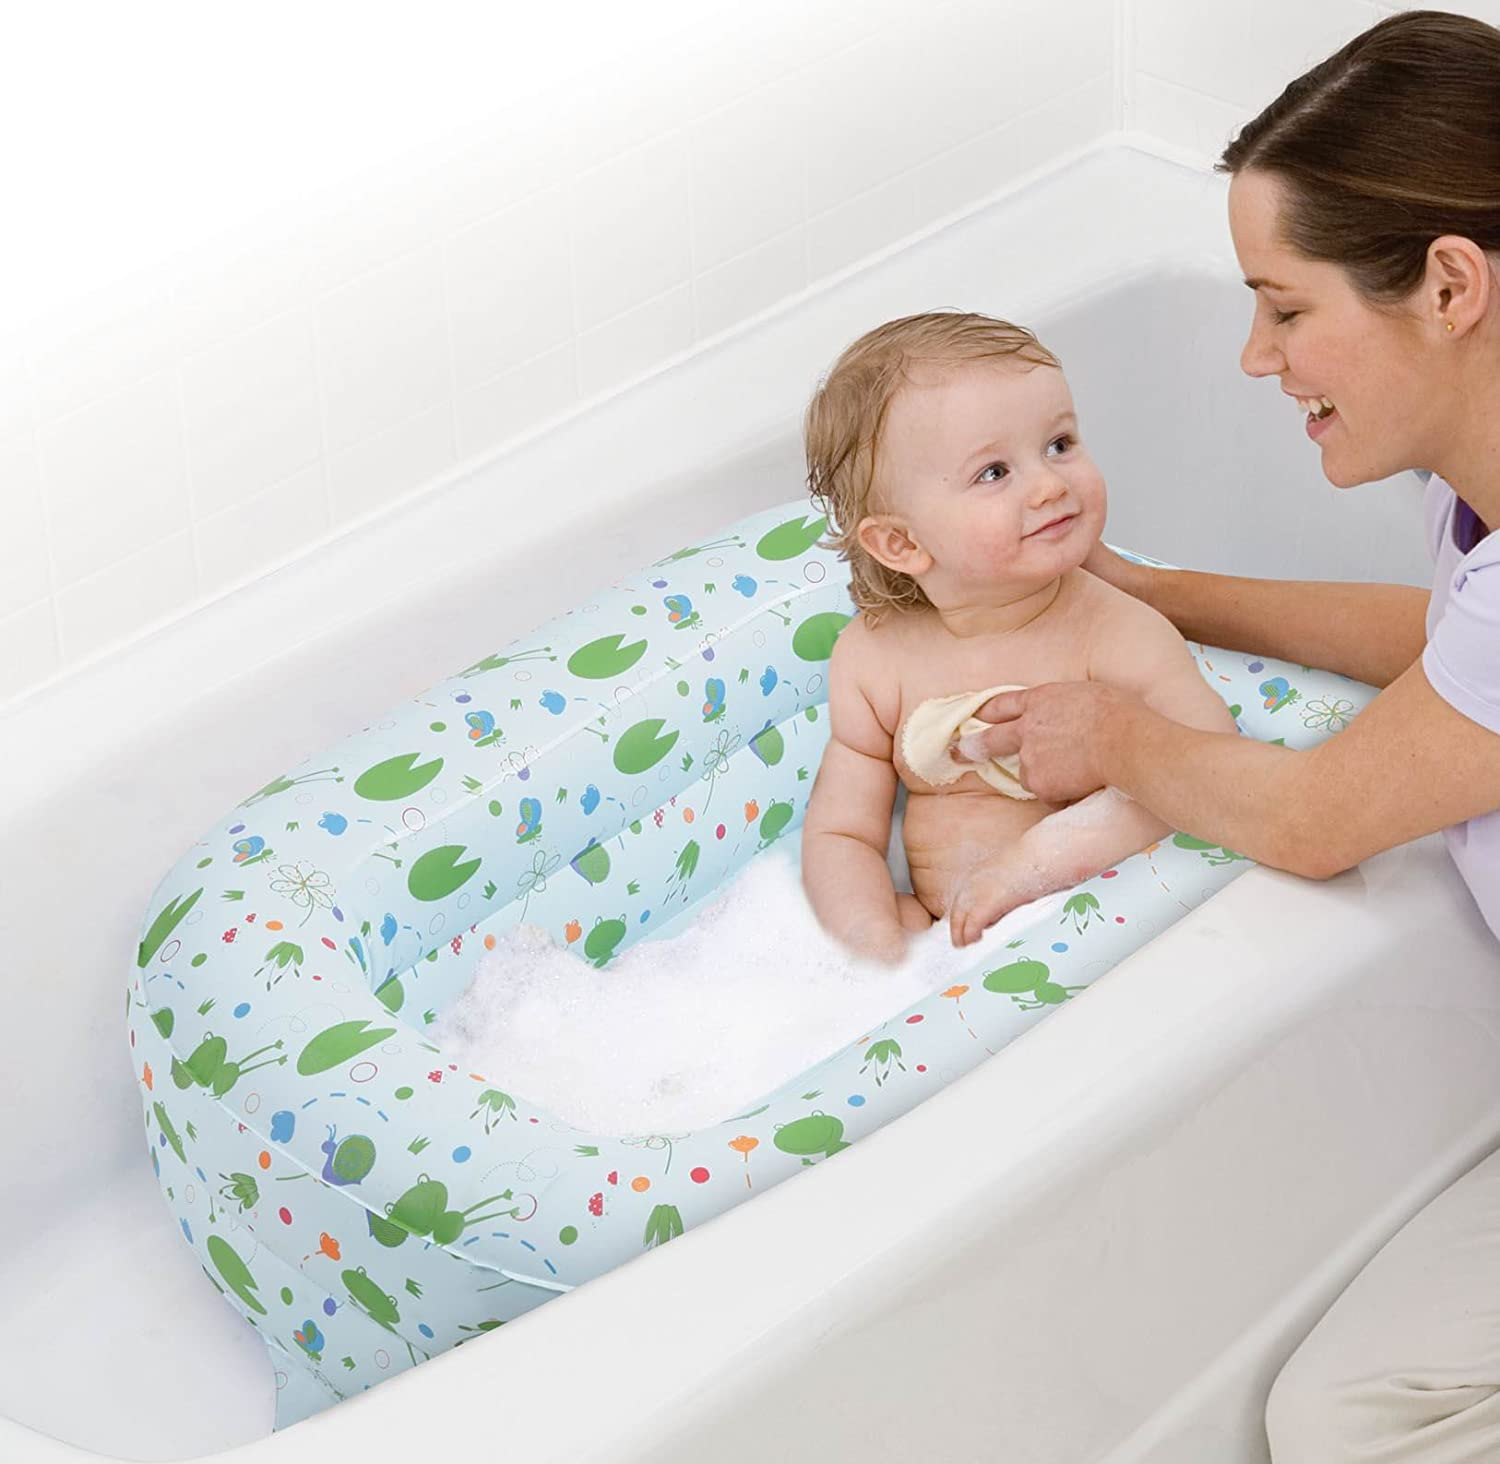 Amazon.com : Safety 1st Kirby Inflatable Tub : Baby Bathing Seats ...